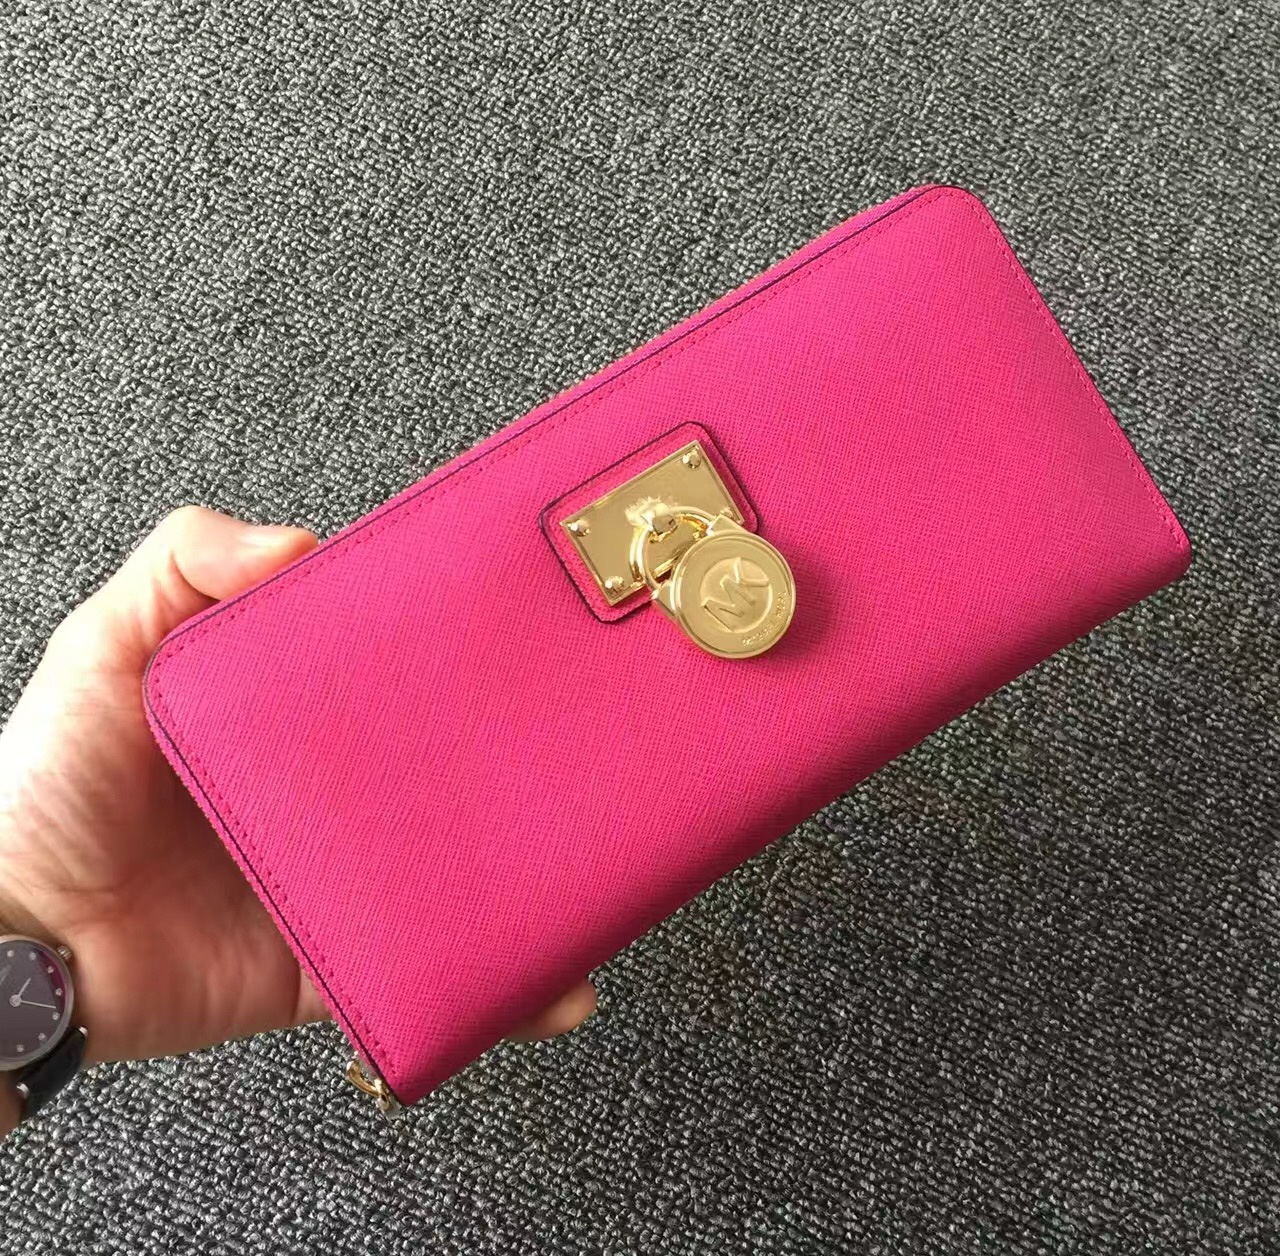 2017 New Michael Kors Lock Women Small Wallets Pink